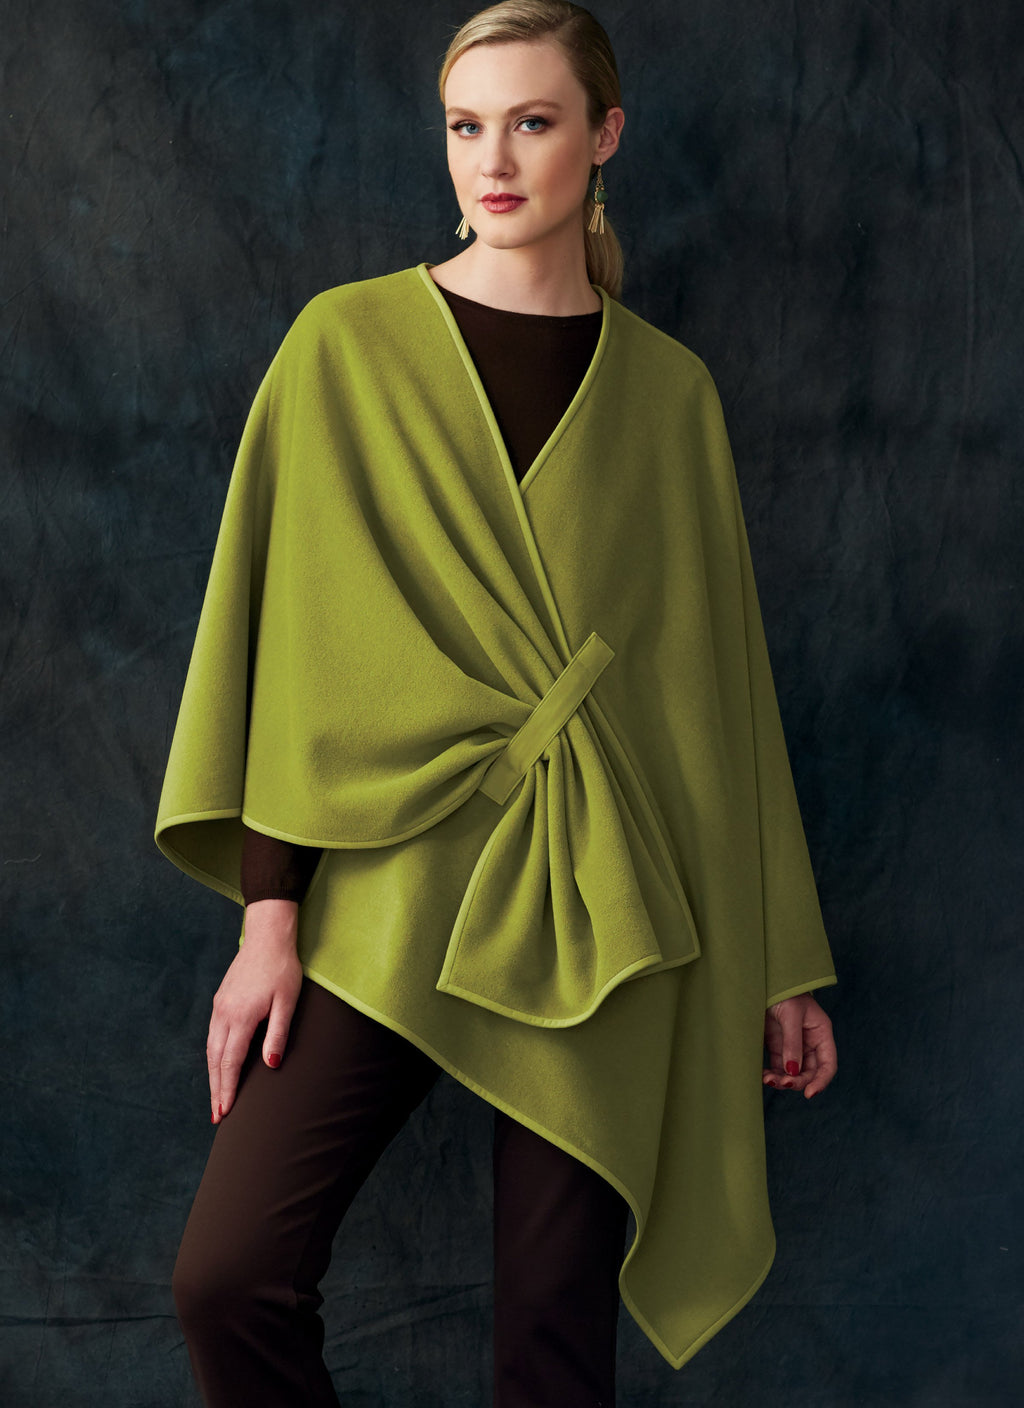 Vogue Pattern 9291 Misses' Wraps, Shrug, and Scarf Pattern | Kathryn Brenne